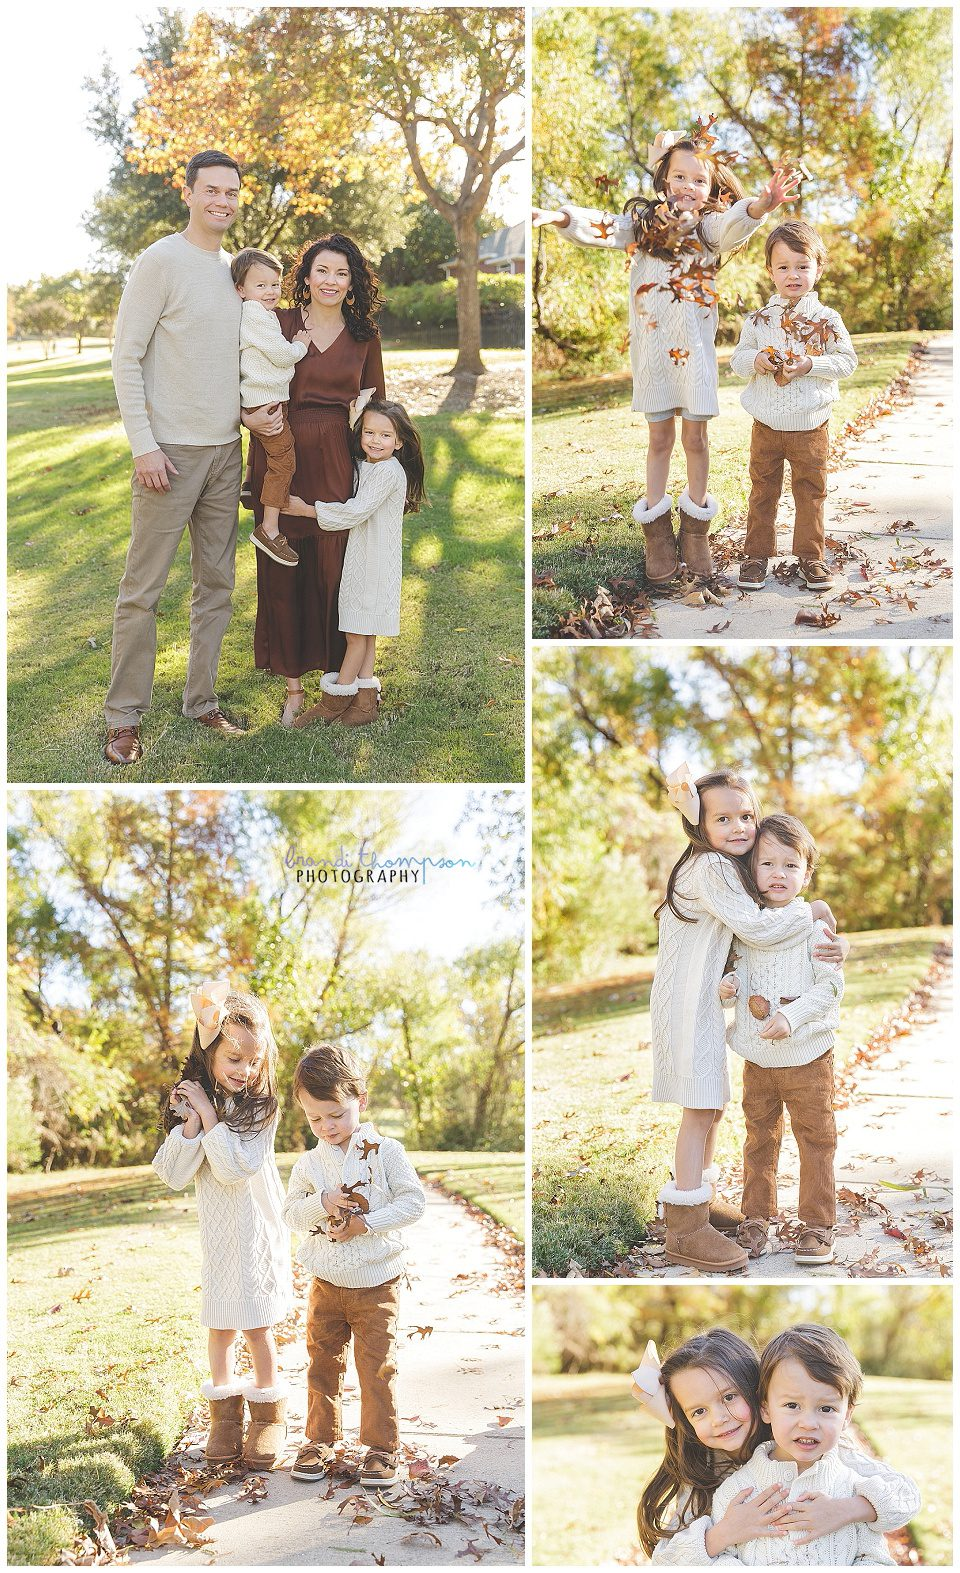 outdoor family photos with a family of four, man, woman, daughter and son, plano tx